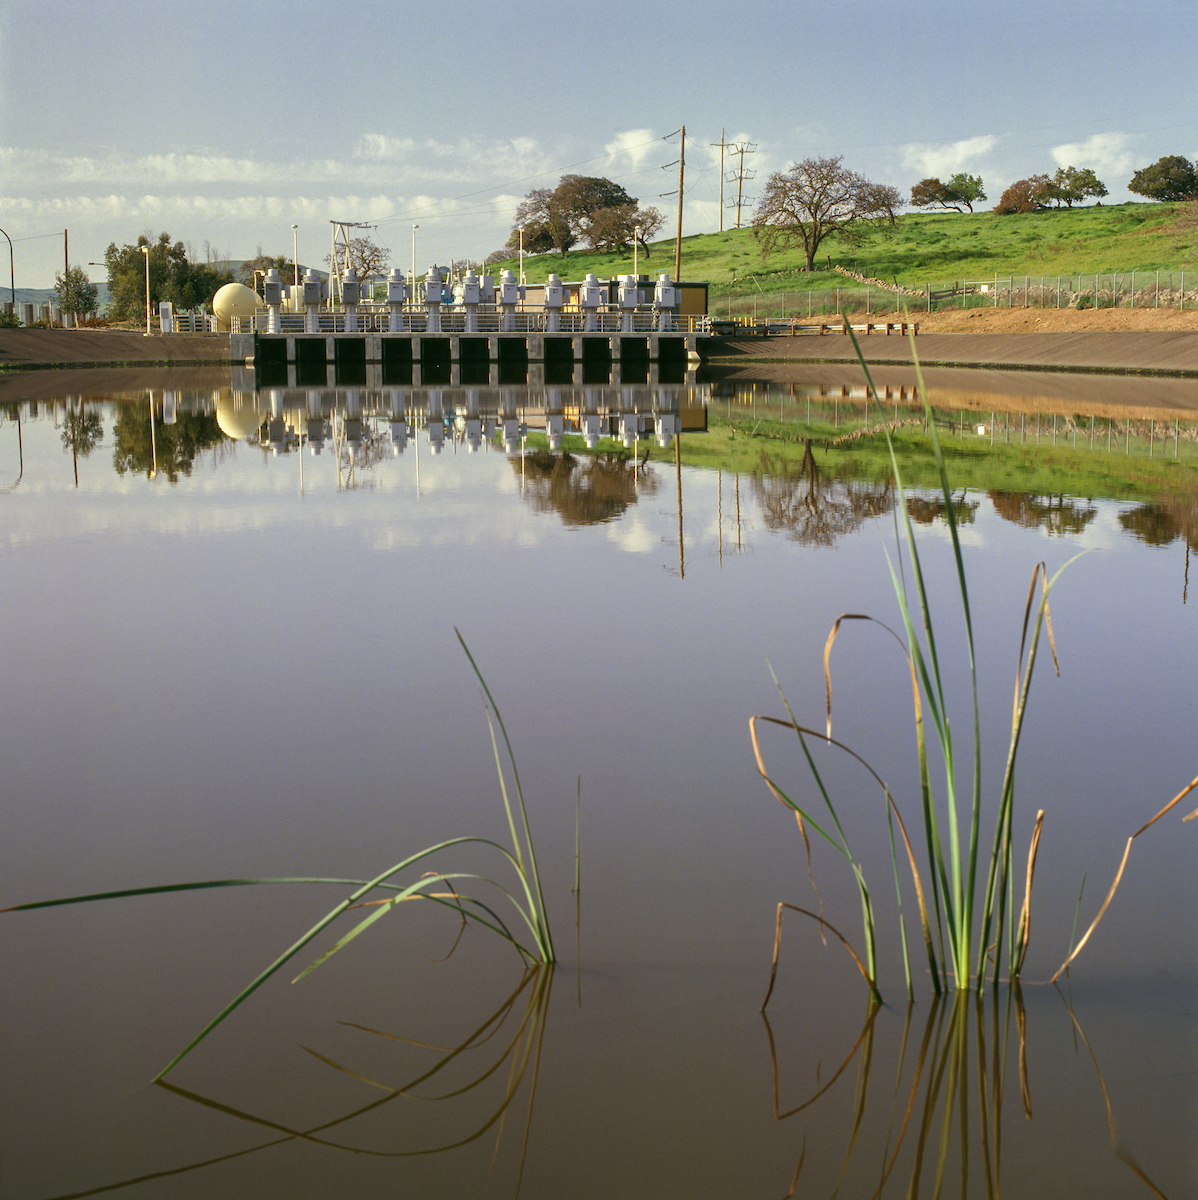 Cordelia Pumping Plant and Forebay, located between the Putah South Canal and Mangles Blvd. in Fairfield, California.